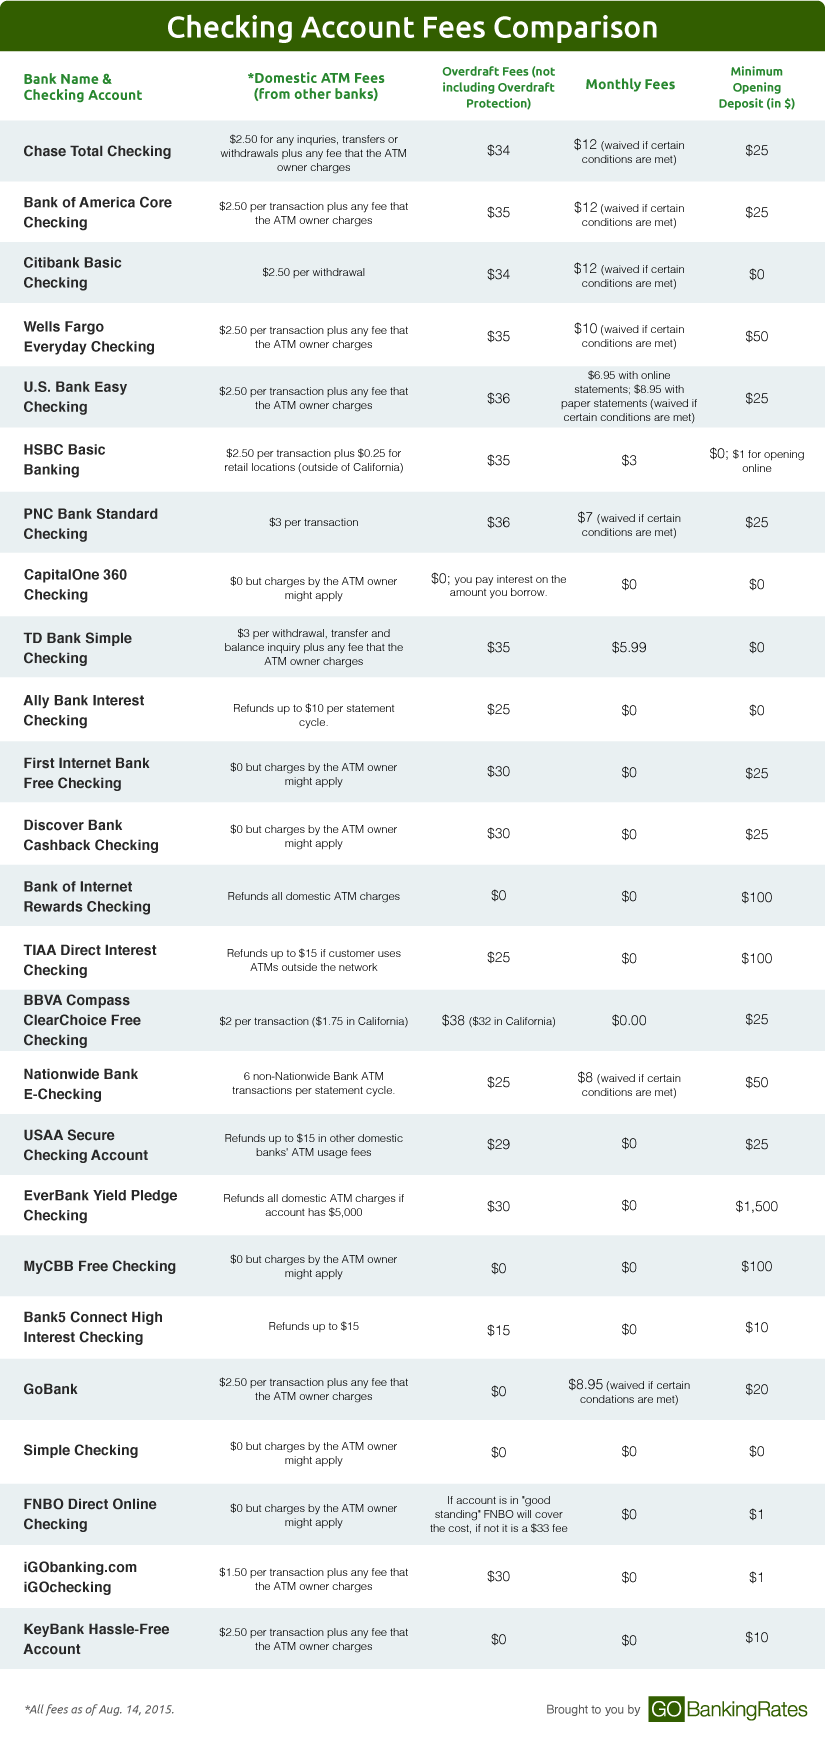 Checking Account Fees Comparison Chart